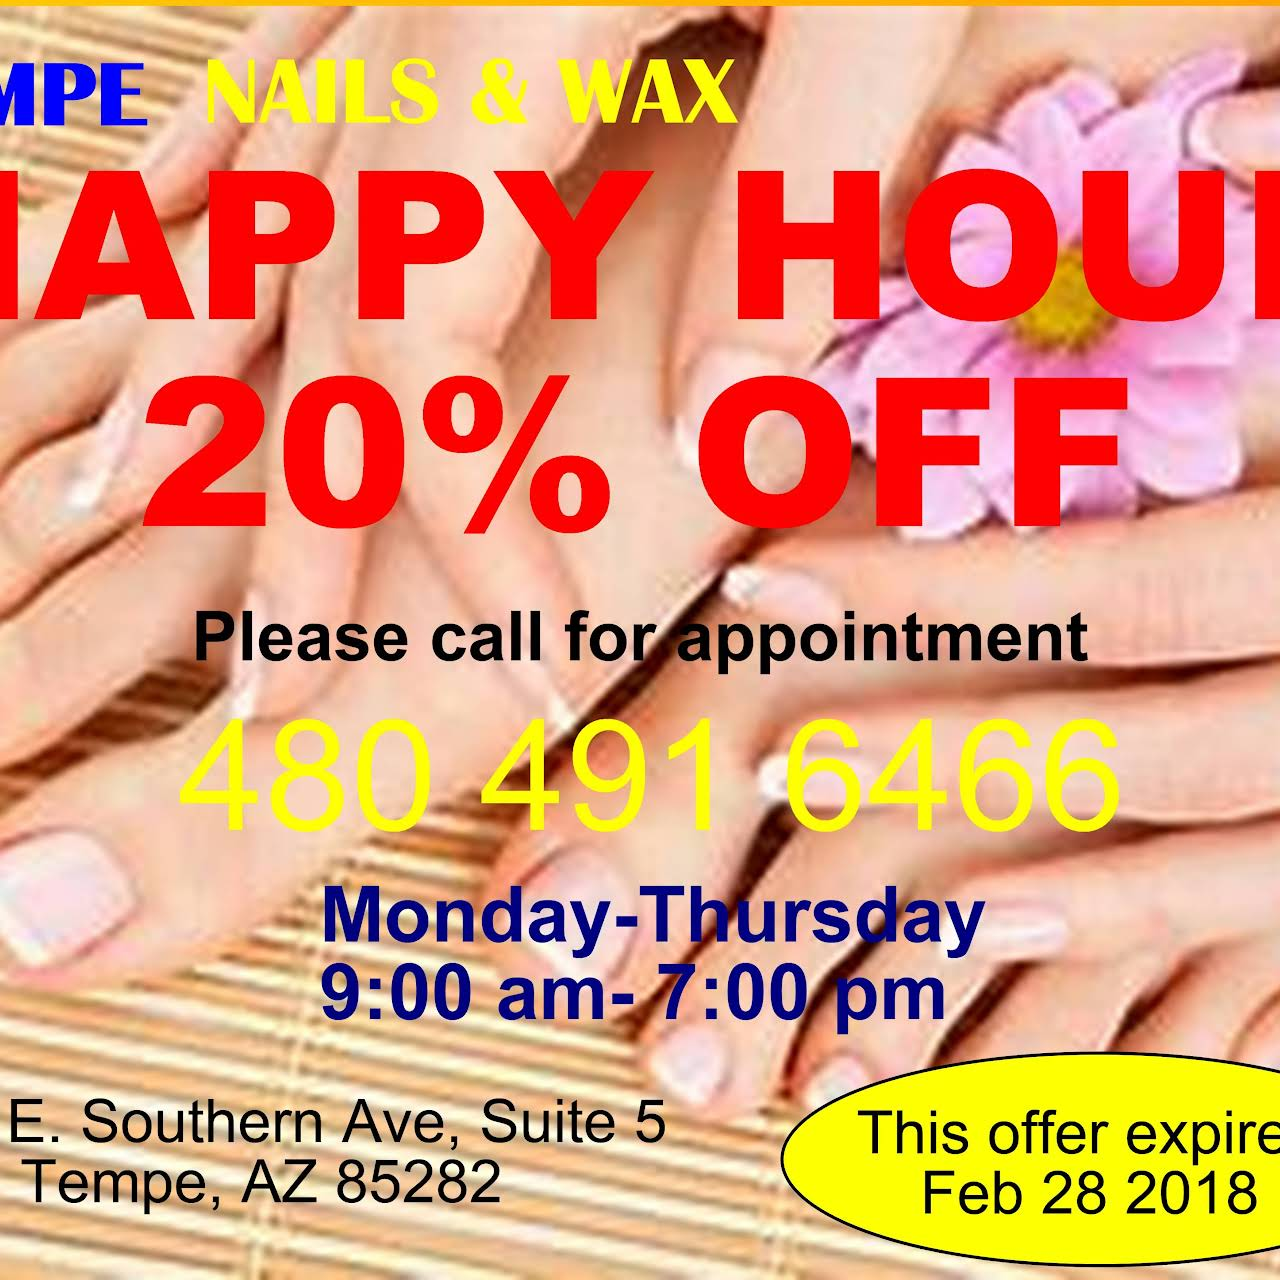 Tempe Nails and Wax - Nail Salon in Tempe